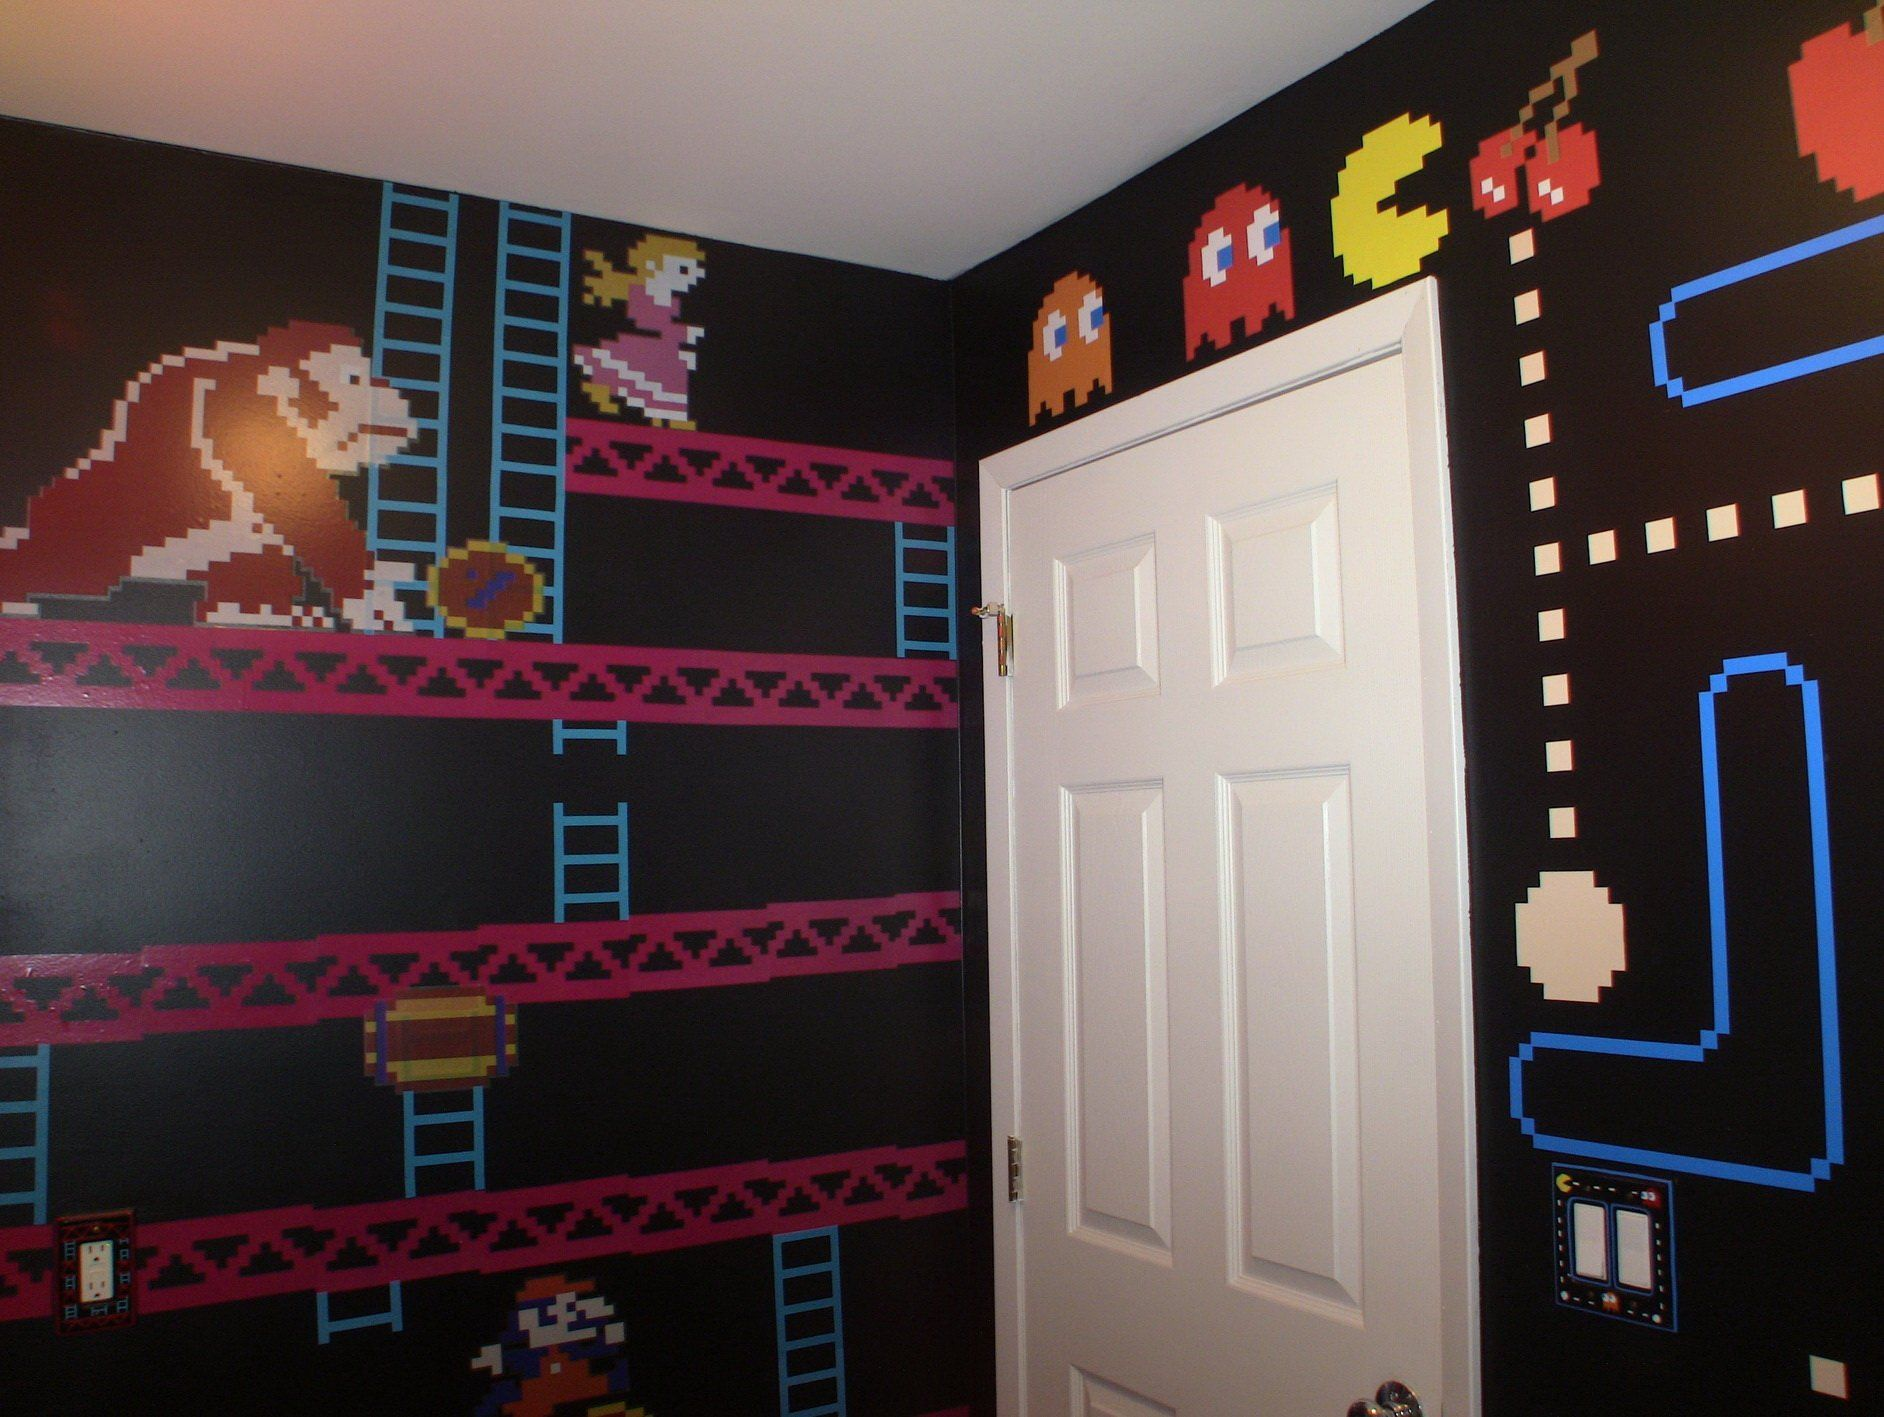 Gamer Bathroom Is Flush With Pixel Art Video Game Bedroom Game Room Game Room Decor